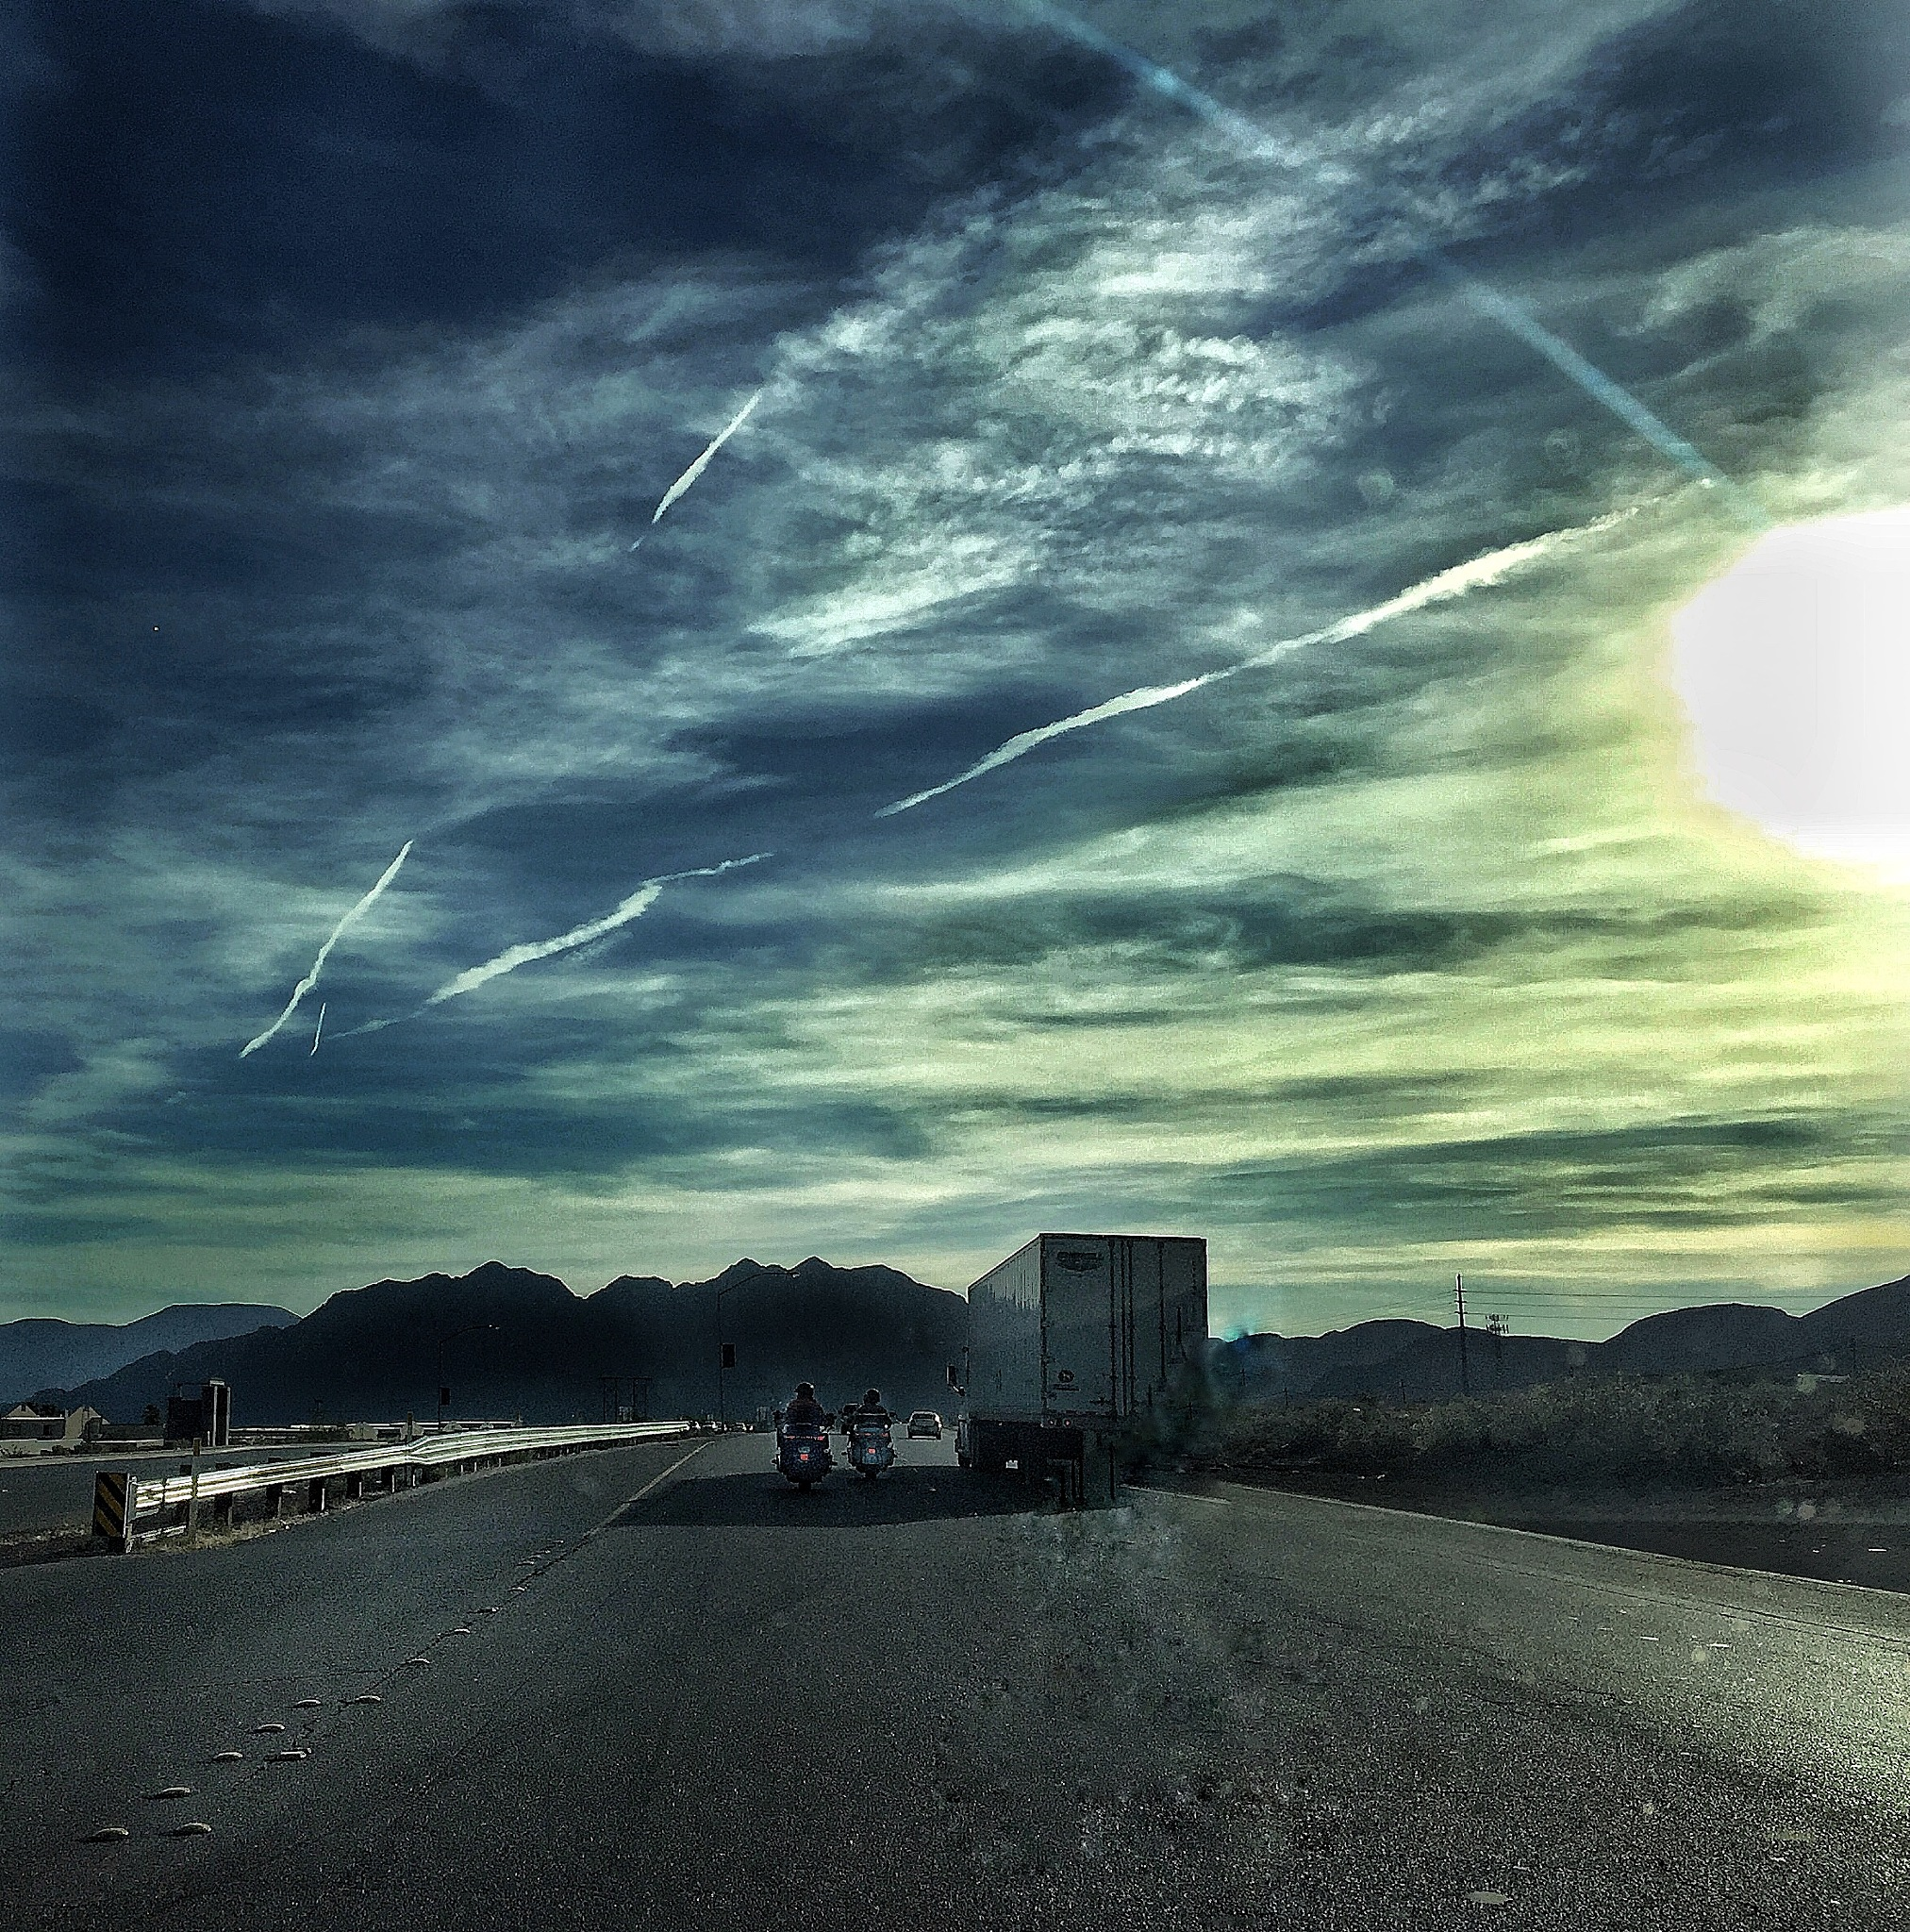 Nevada's Highway and 110 F by Walter Novak